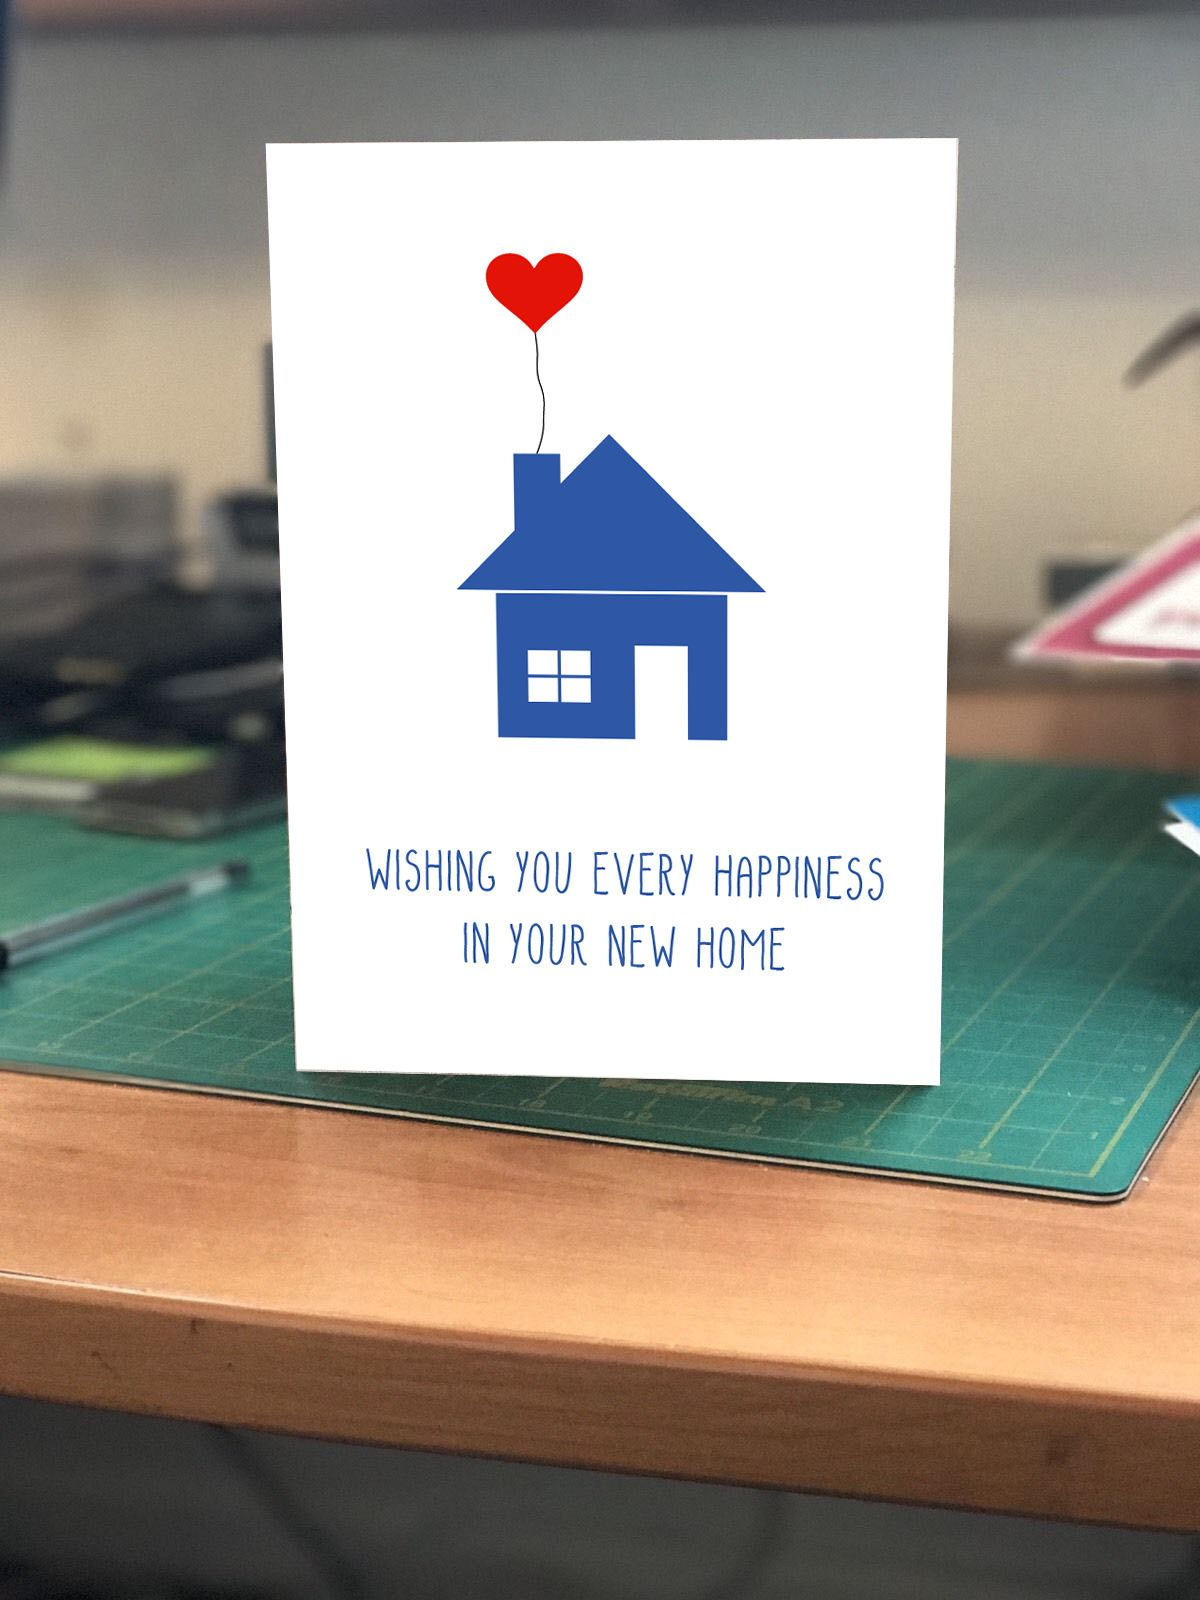 God Bless You Always Wishing You Every Happiness in Your New Home Card